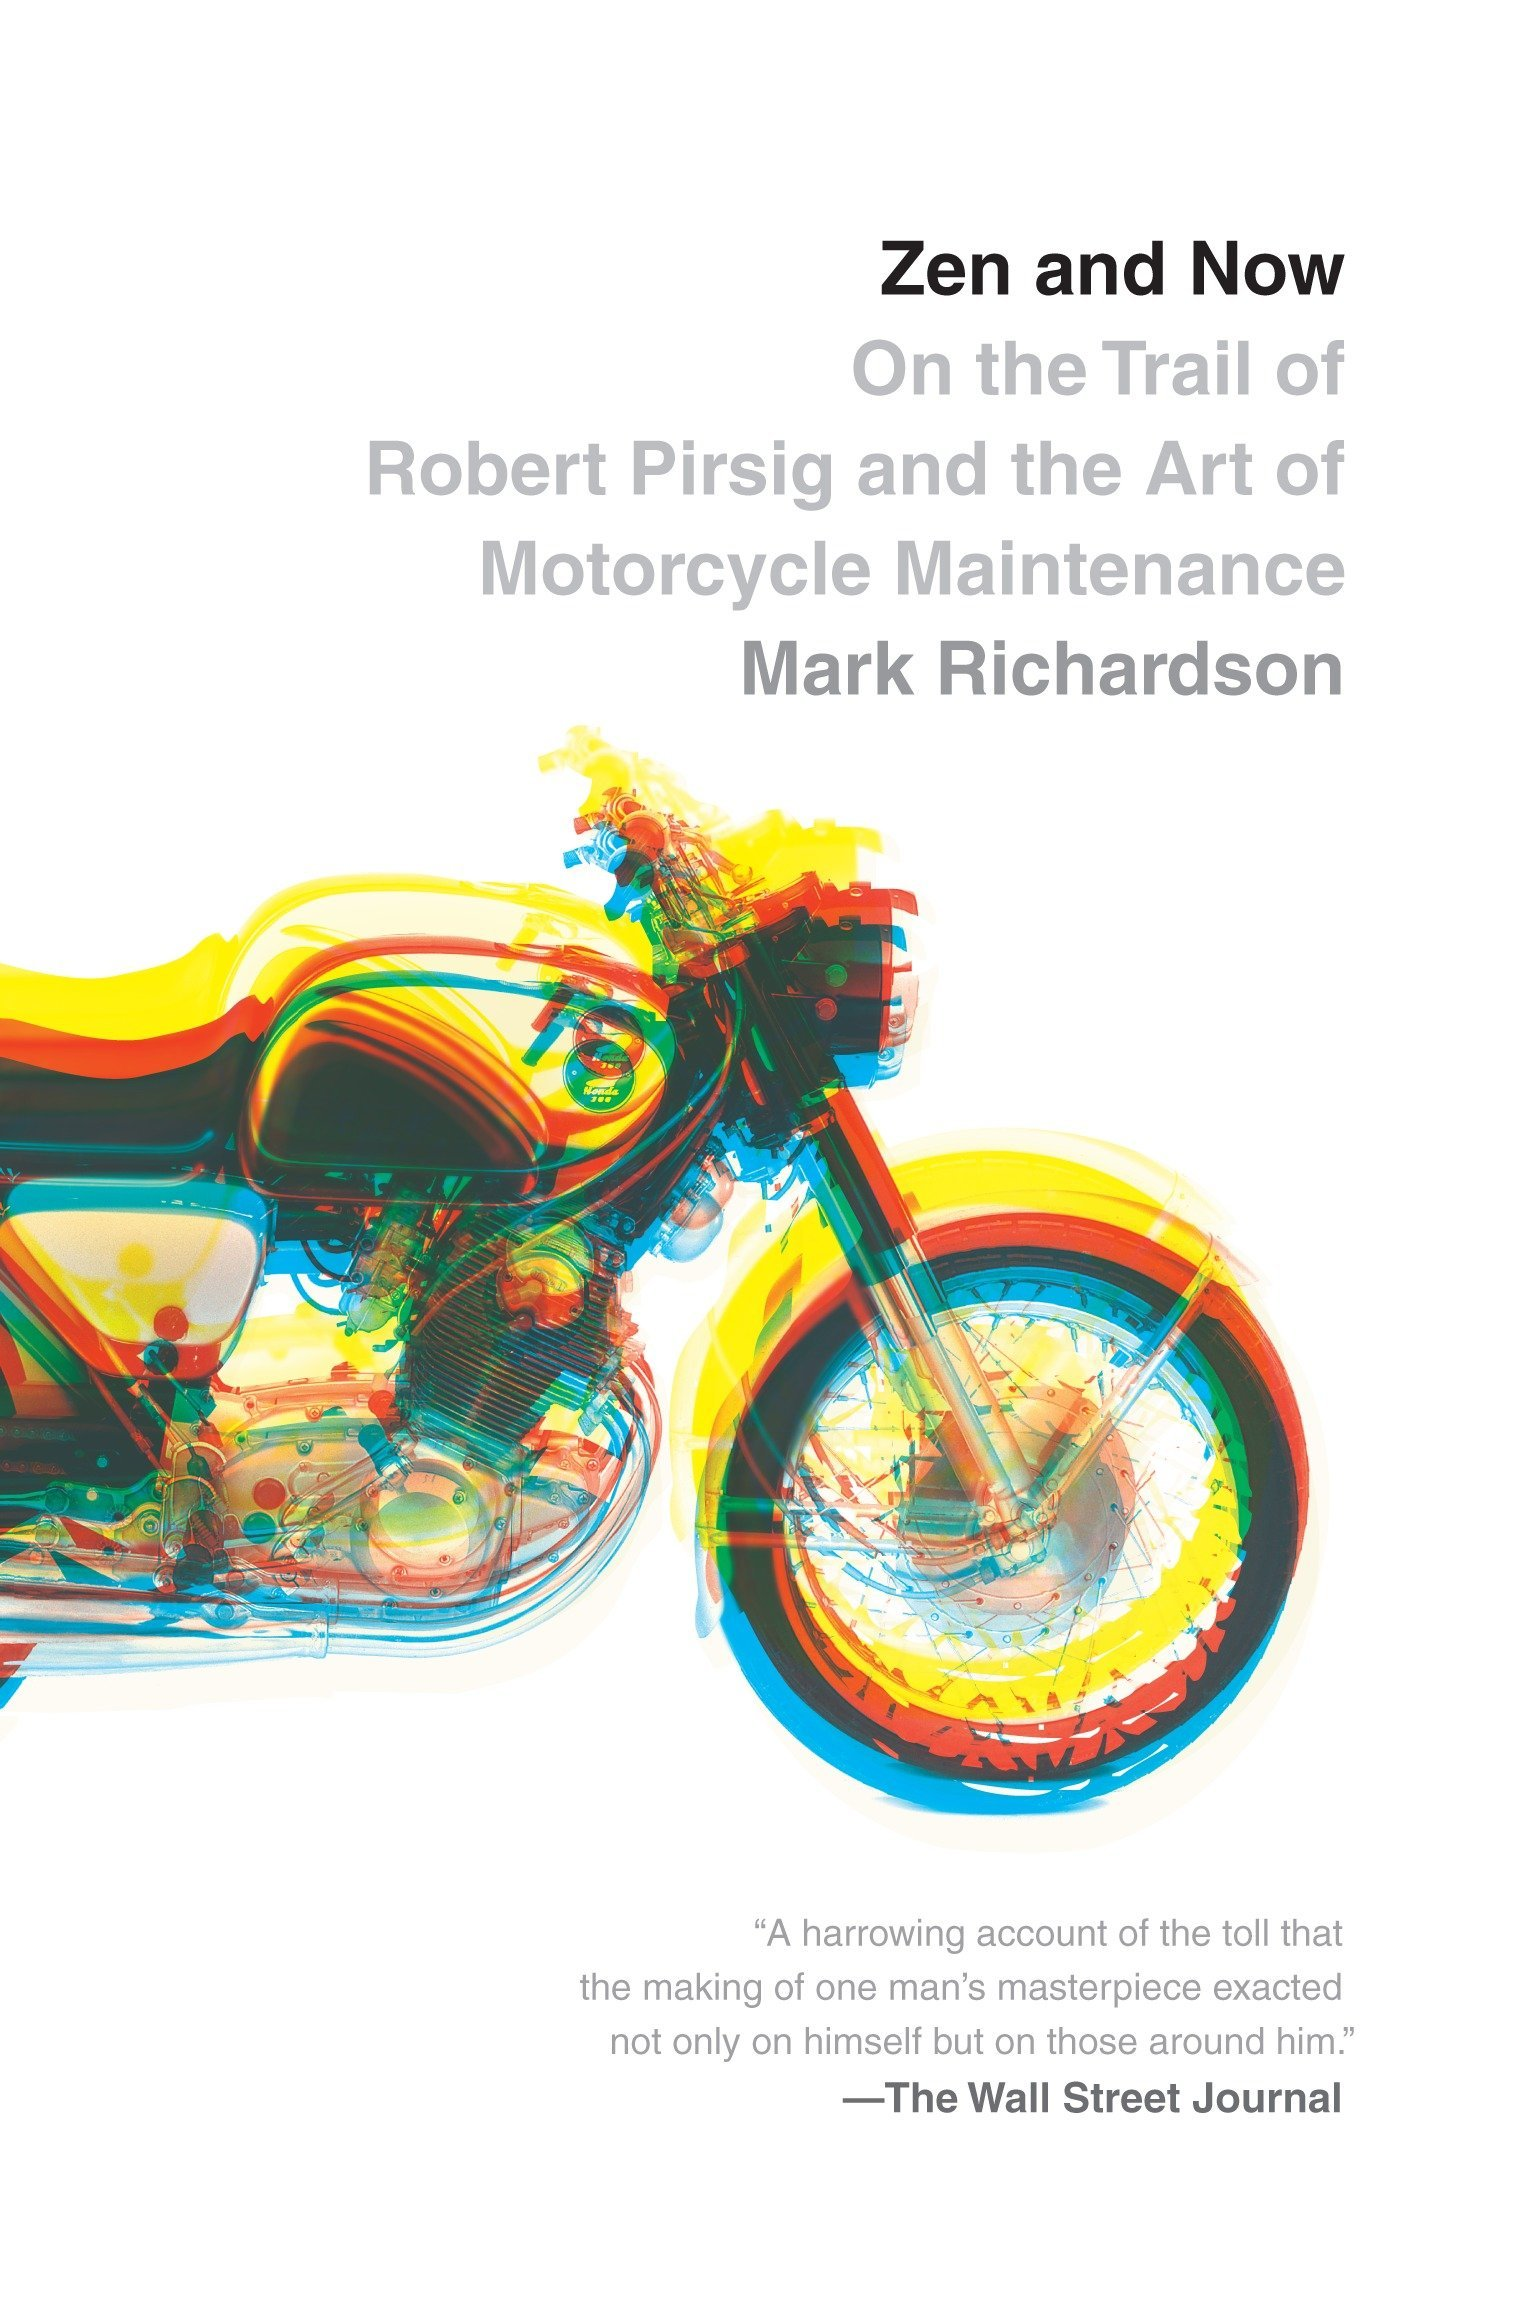 Zen And Now On The Trail Of Robert Pirsig And The Art Of Motorcycle